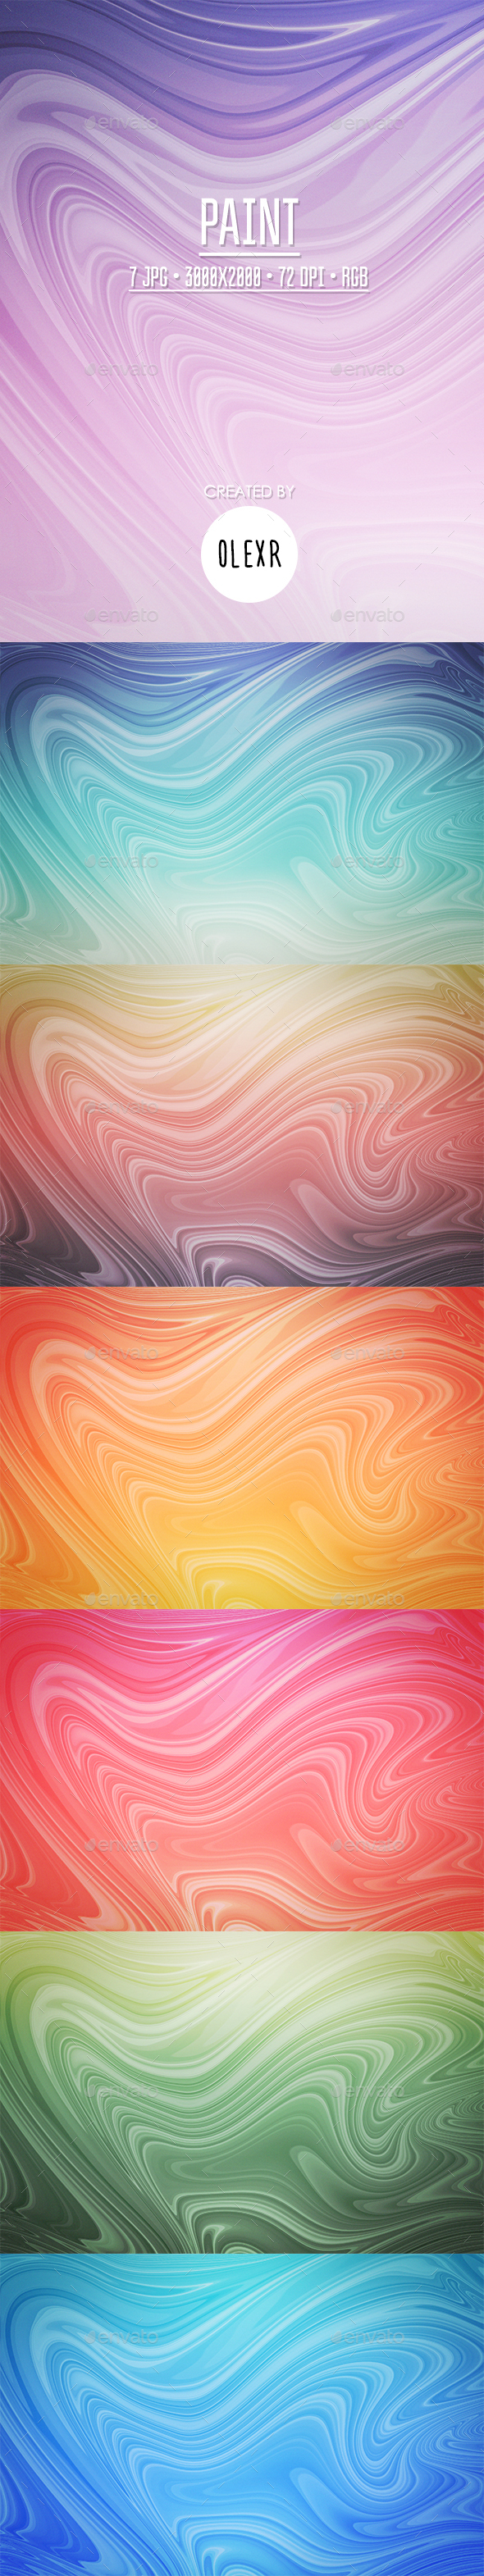 Paint Backgrounds - Abstract Backgrounds